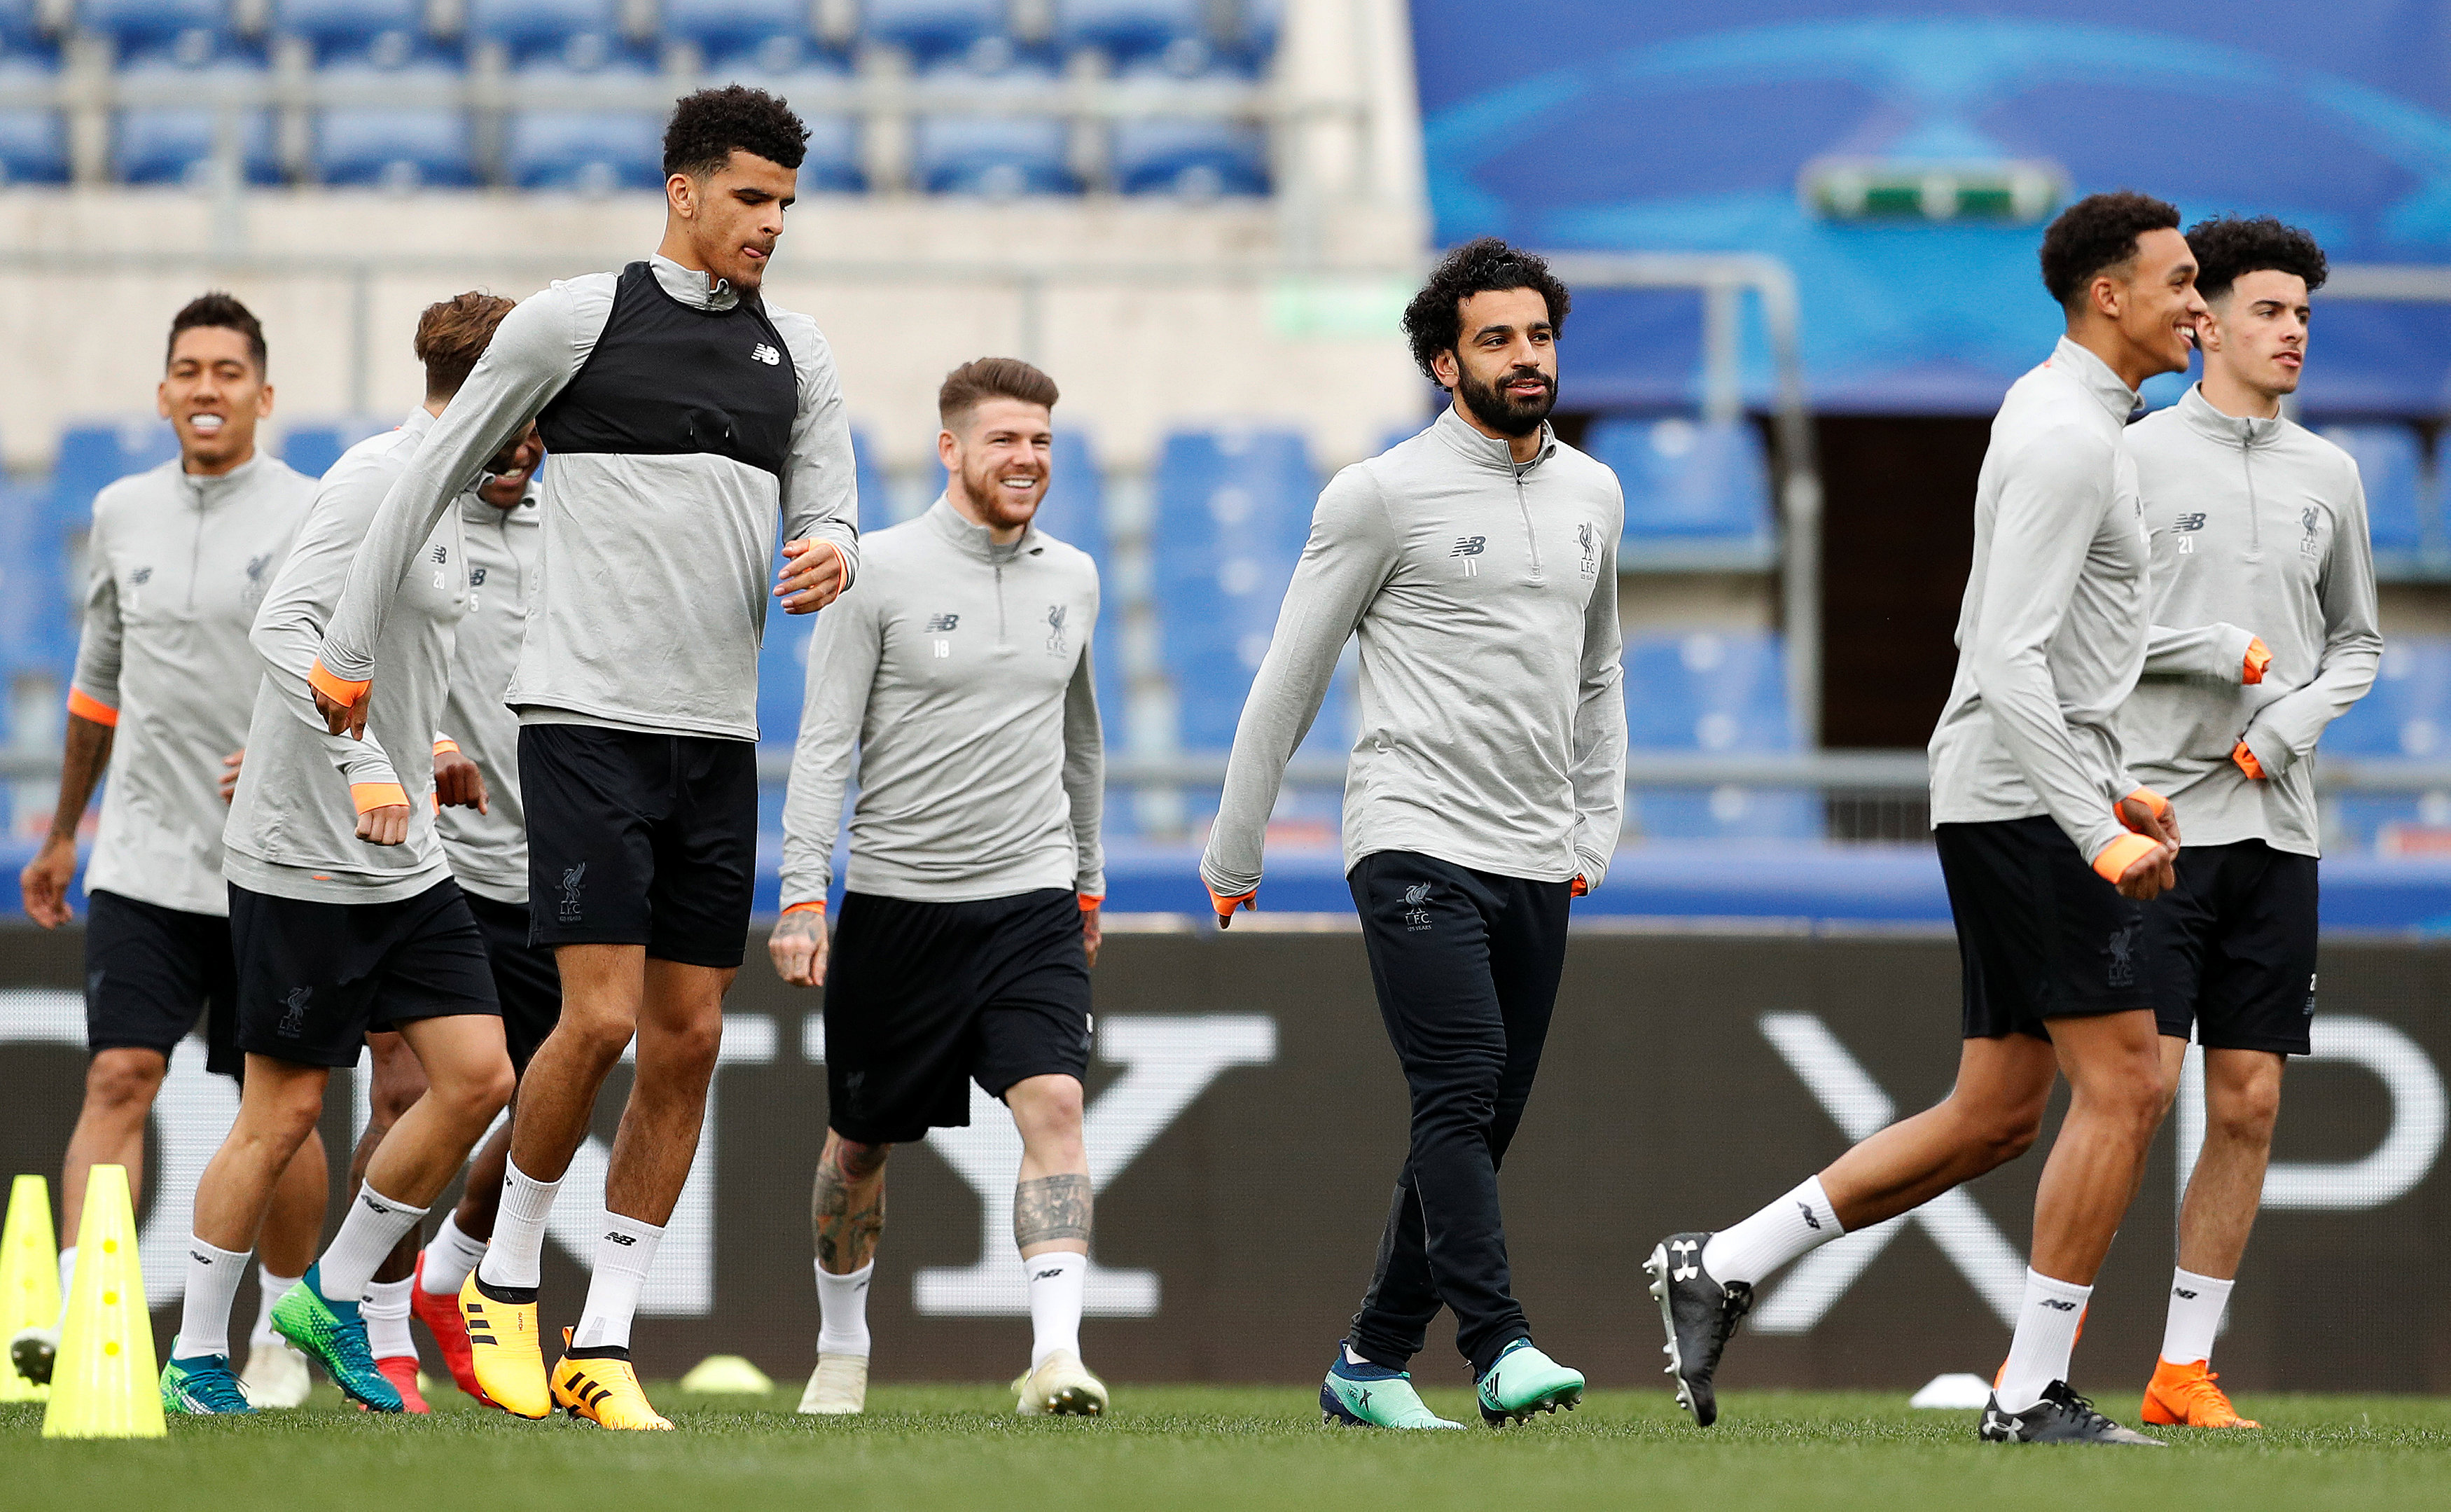 Soccer Football - Champions League - Liverpool Training - Stadio Olimpico, Rome, Italy - May 1, 2018   Liverpool's Dominic Solanke, Mohamed Salah and team mates during training   Action Images via Reuters/John Sibley